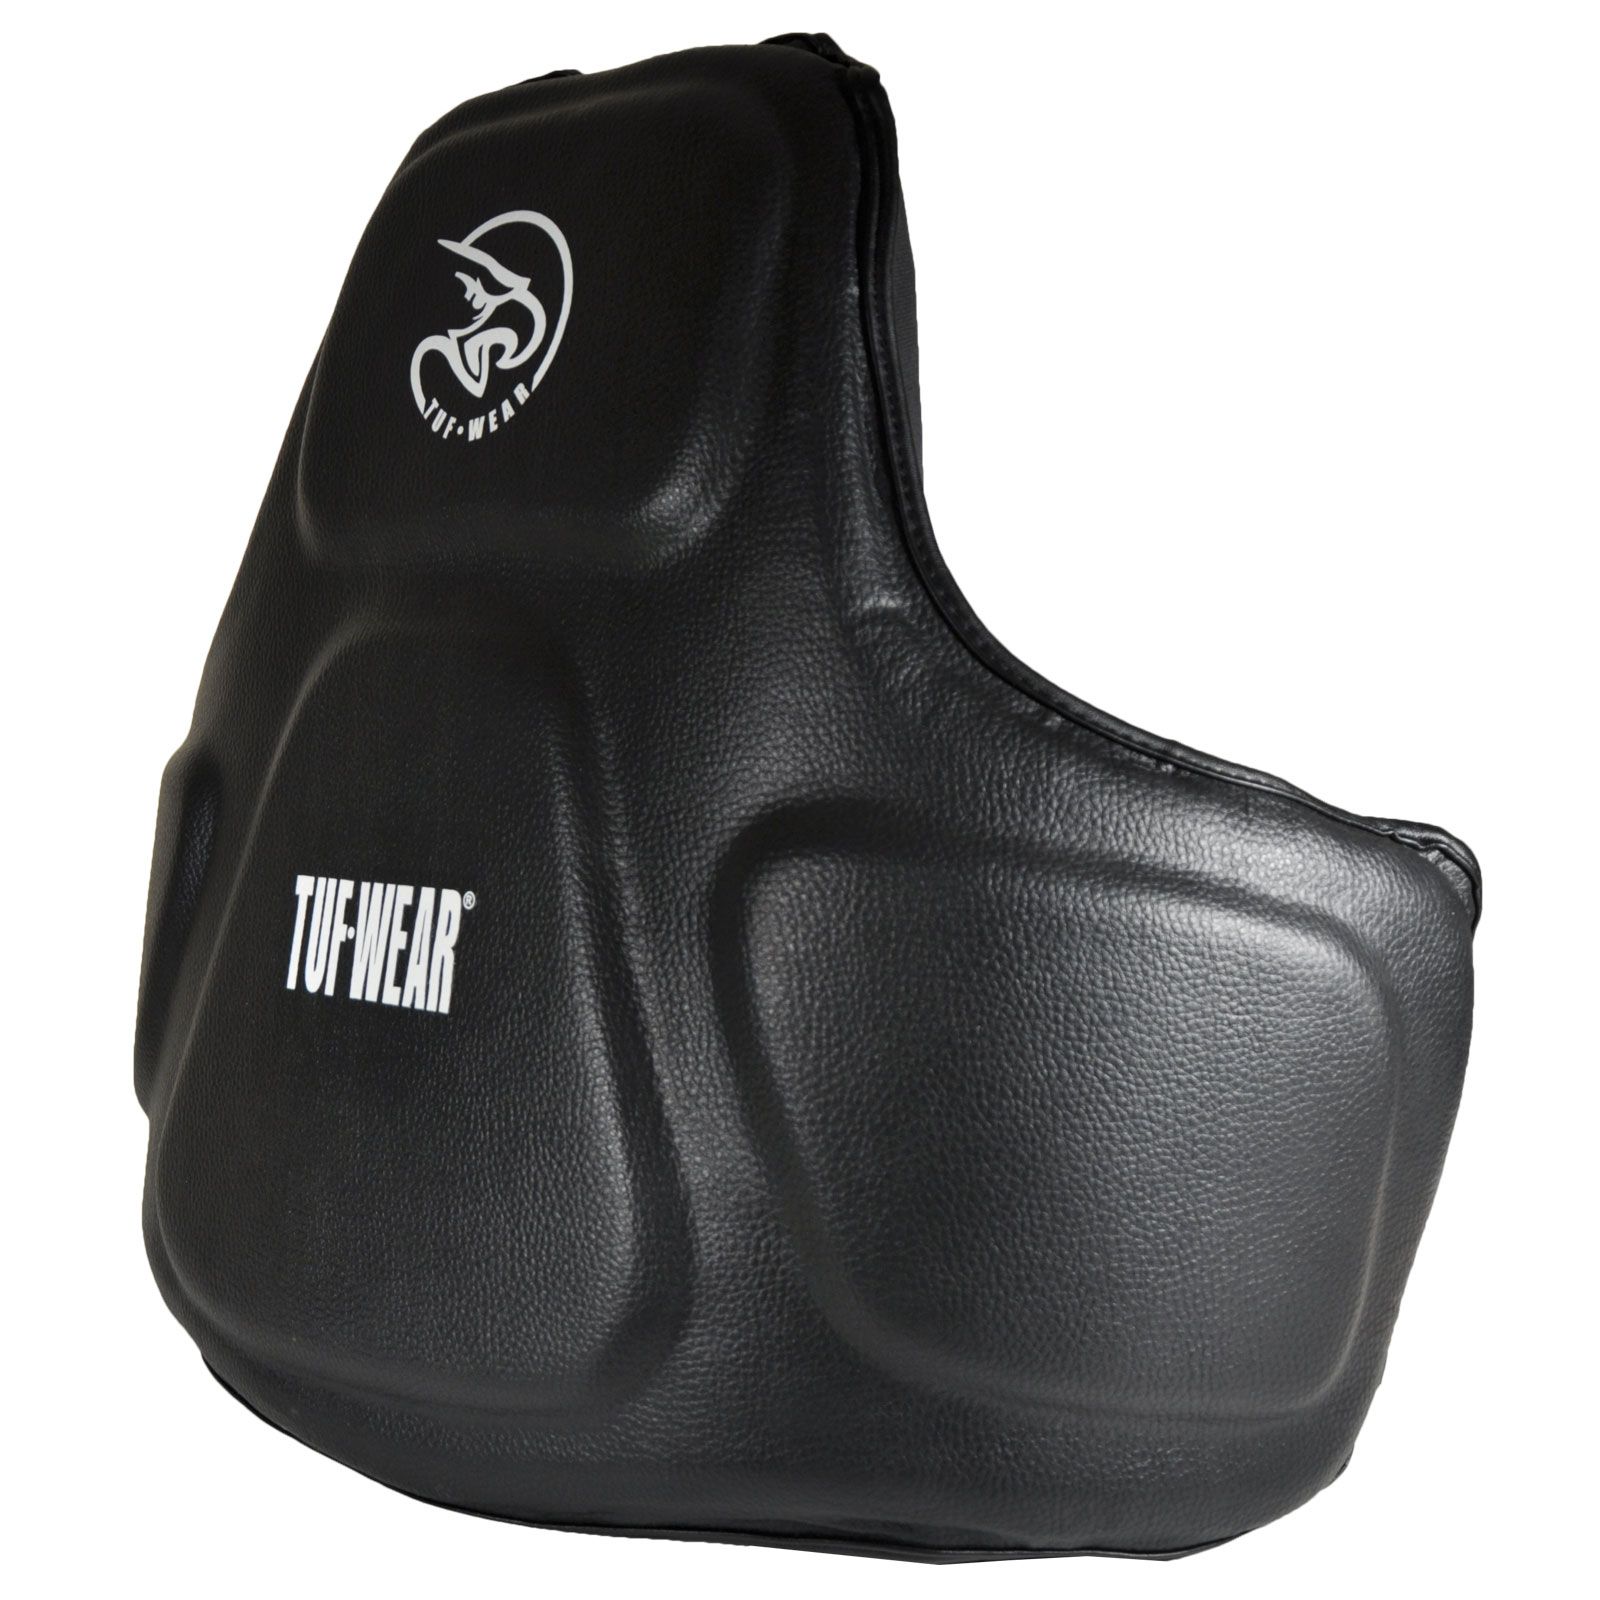 TW11098 Fitness Body Protector – Side